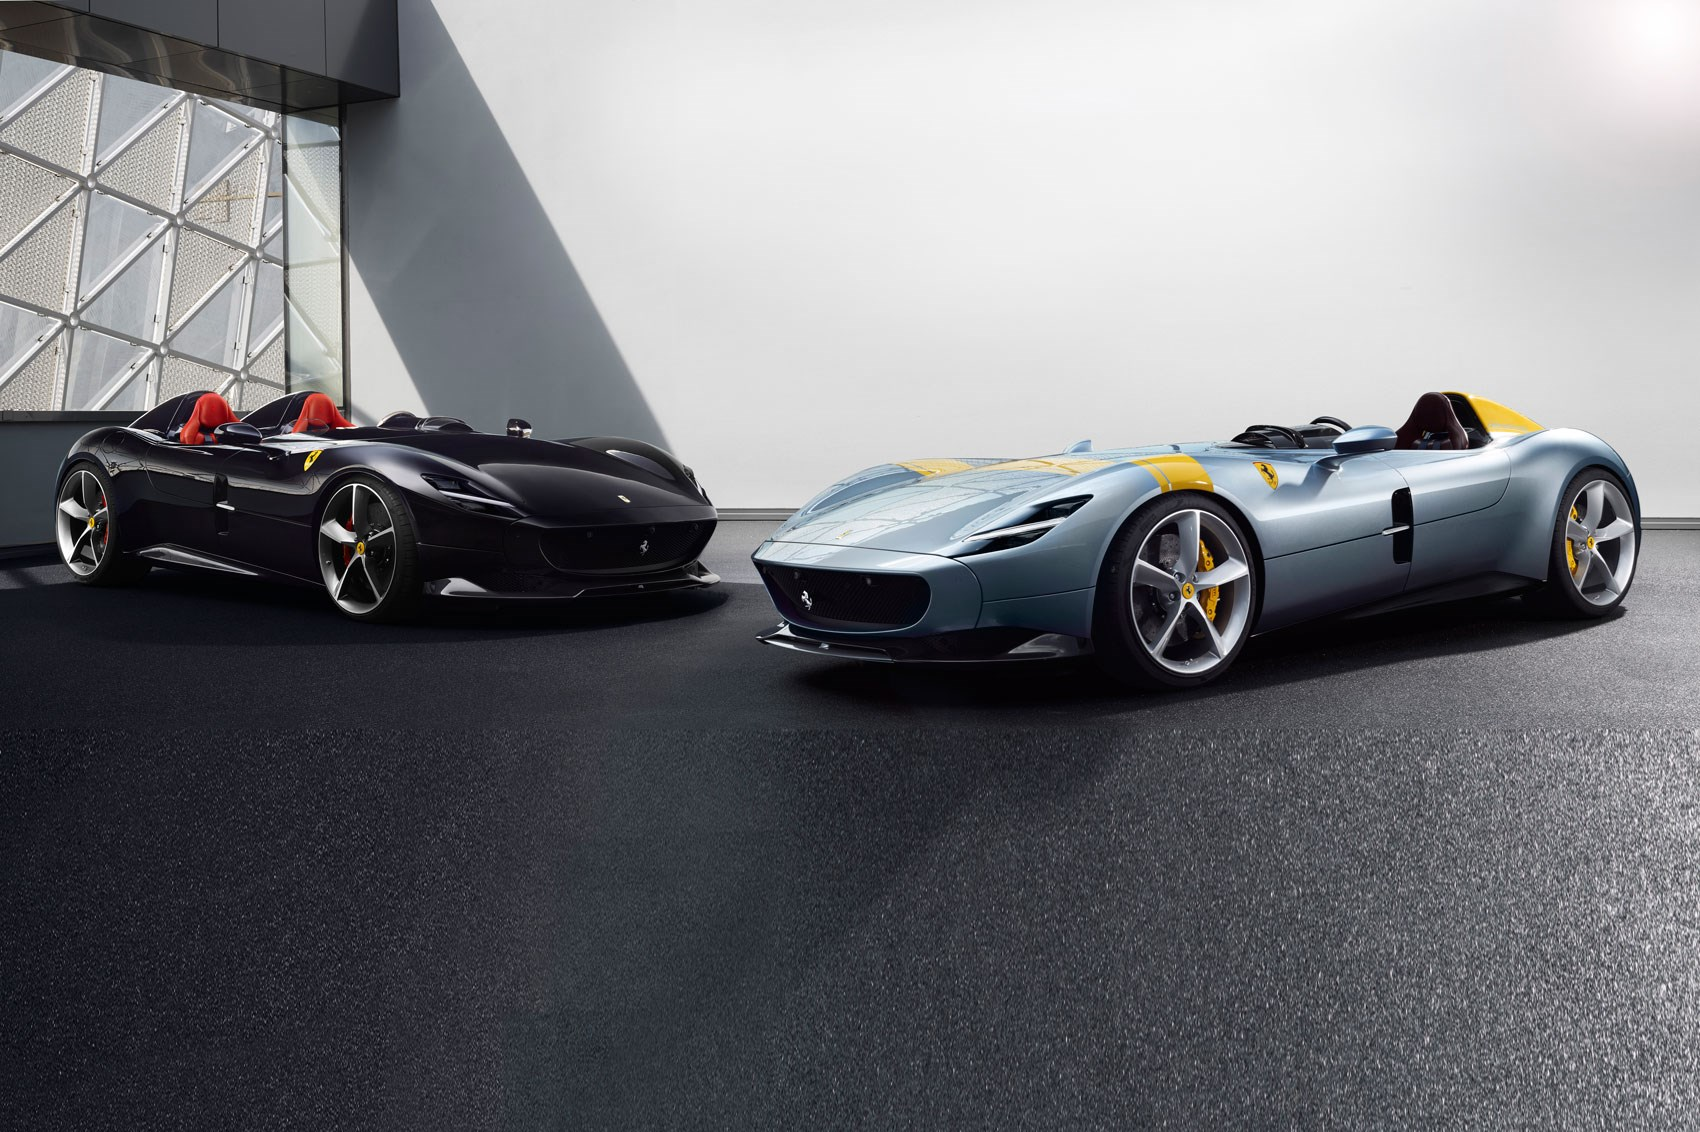 Ferrari Monza Sp1 And Sp2 Pricing Confirmed At Paris Car Magazine